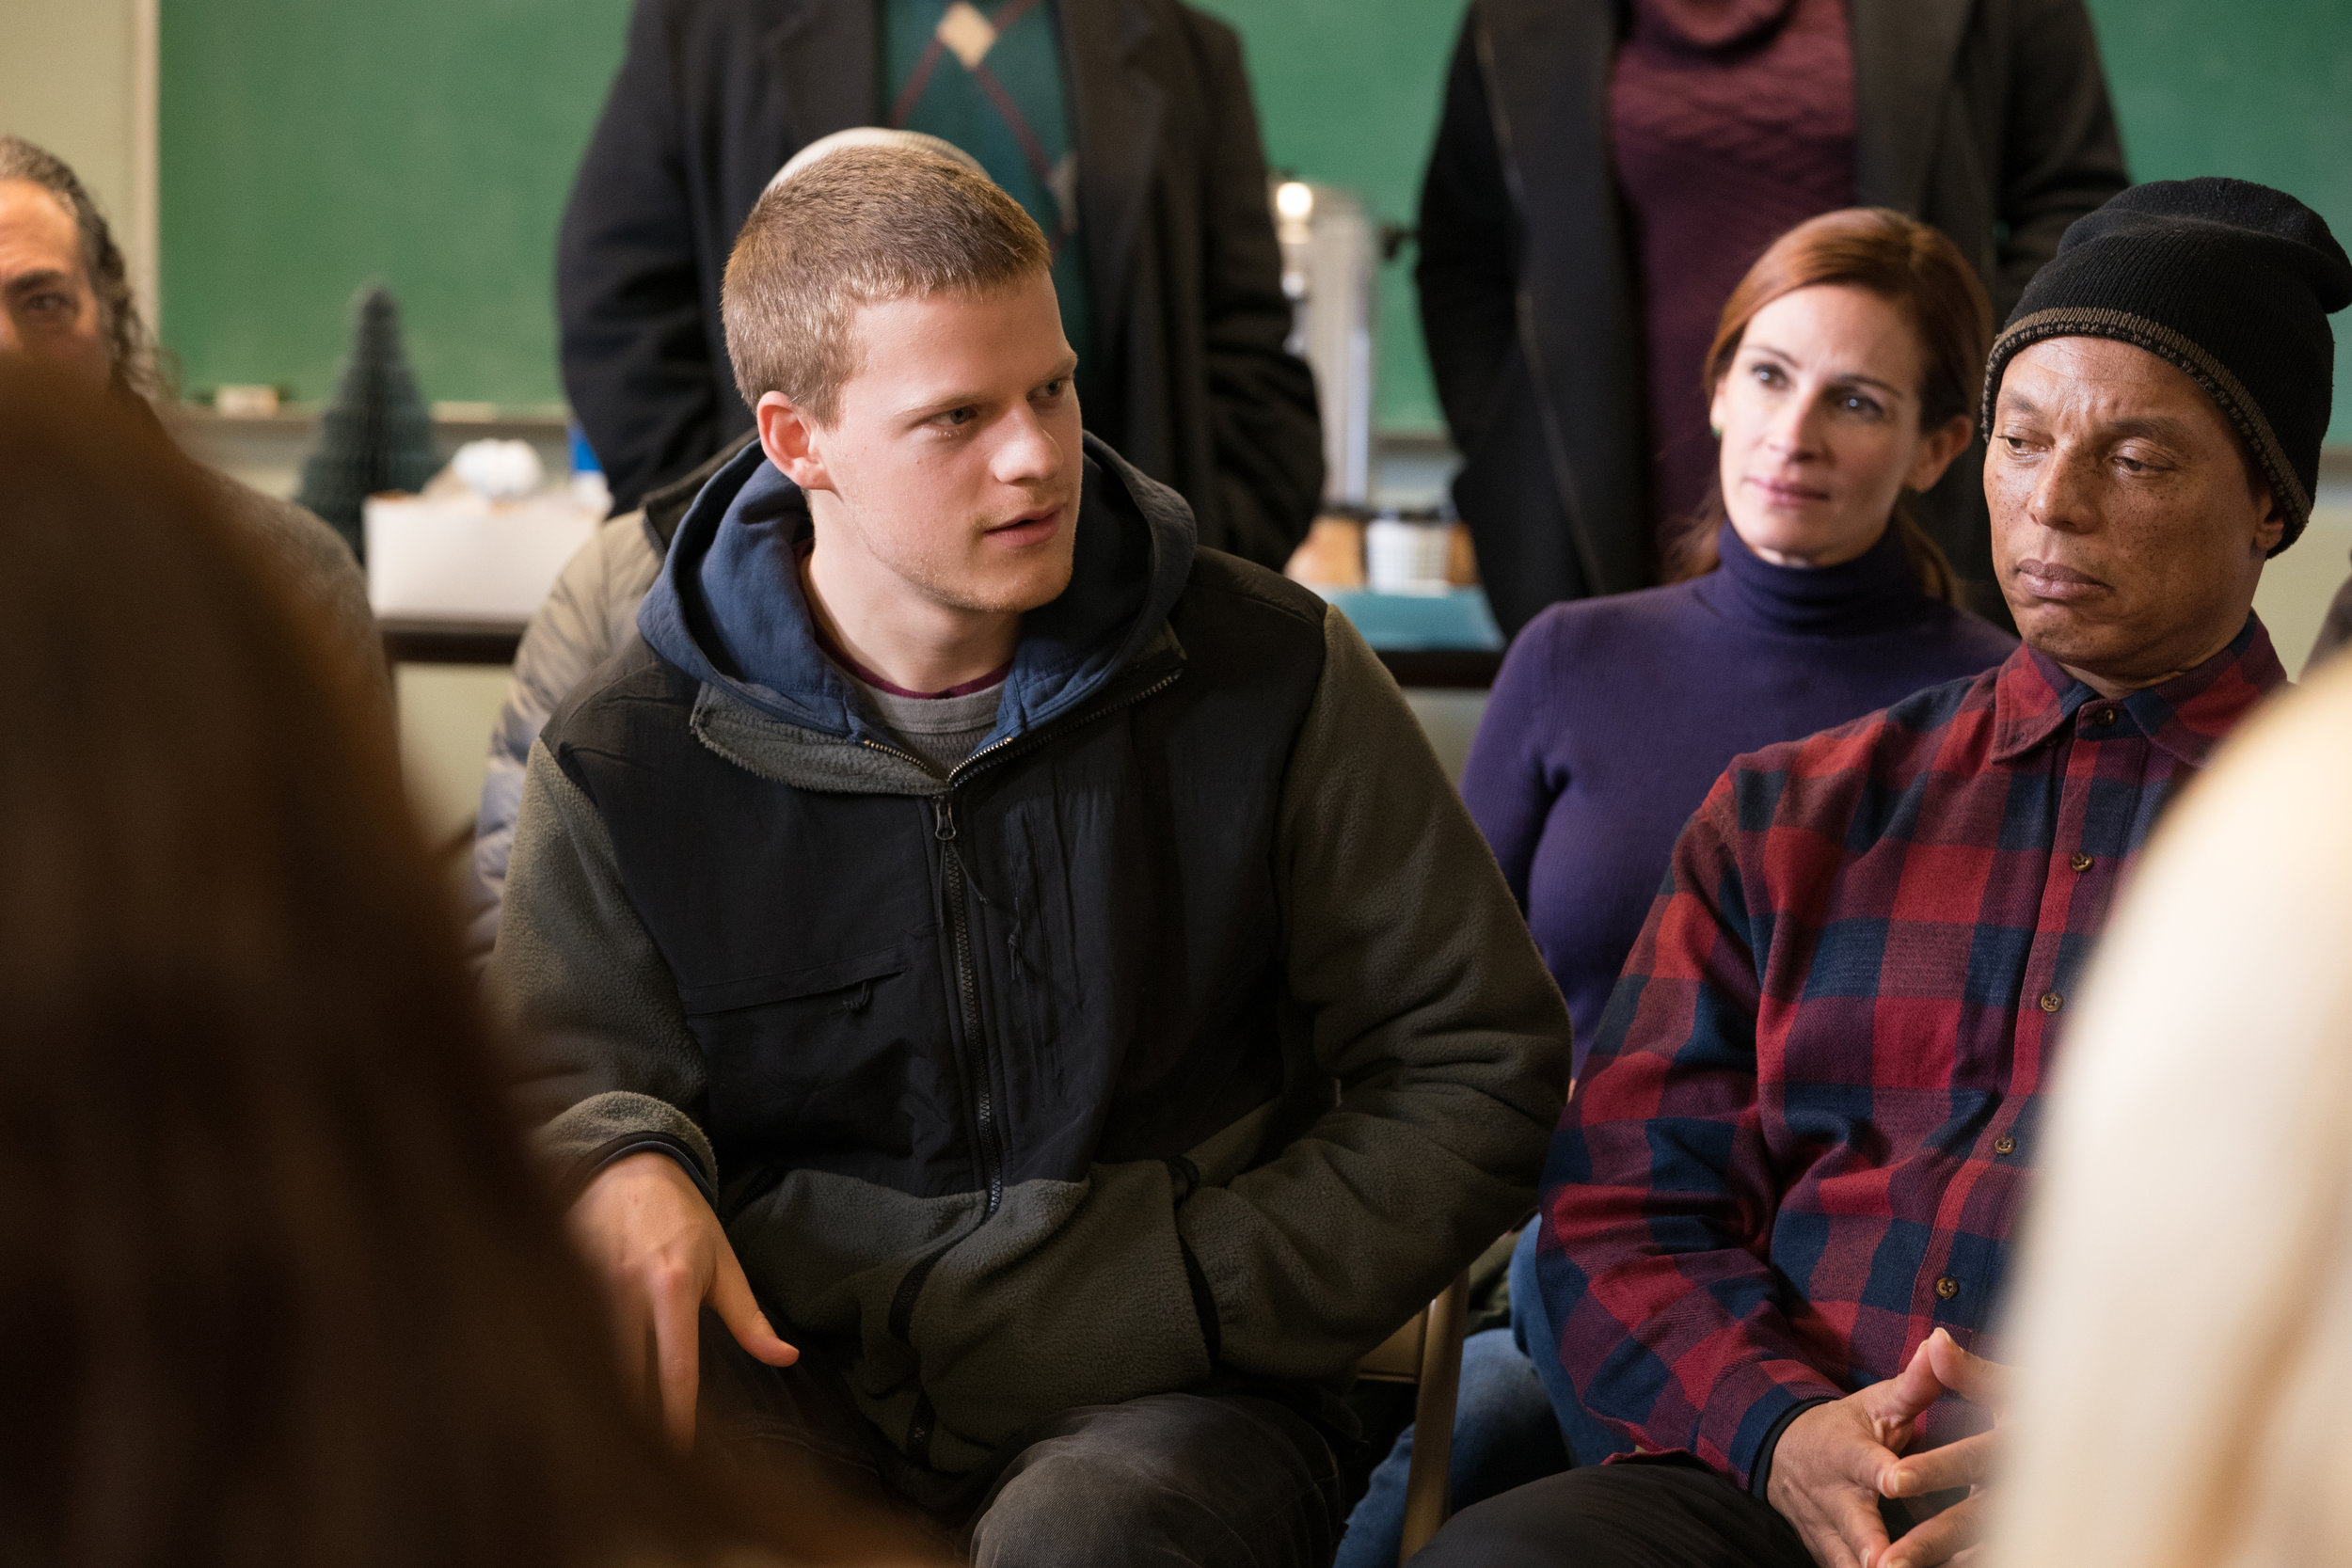 """Ben (Lucas Hedges, center) speaks during a Narcotics Anonymous meeting, accompanied by his mom, Holly (Julia Roberts, background), in the drama """"Ben Is Back."""" (Photo by Mark Schafer, courtesy LD Entertainment and Roadside Attractions)"""